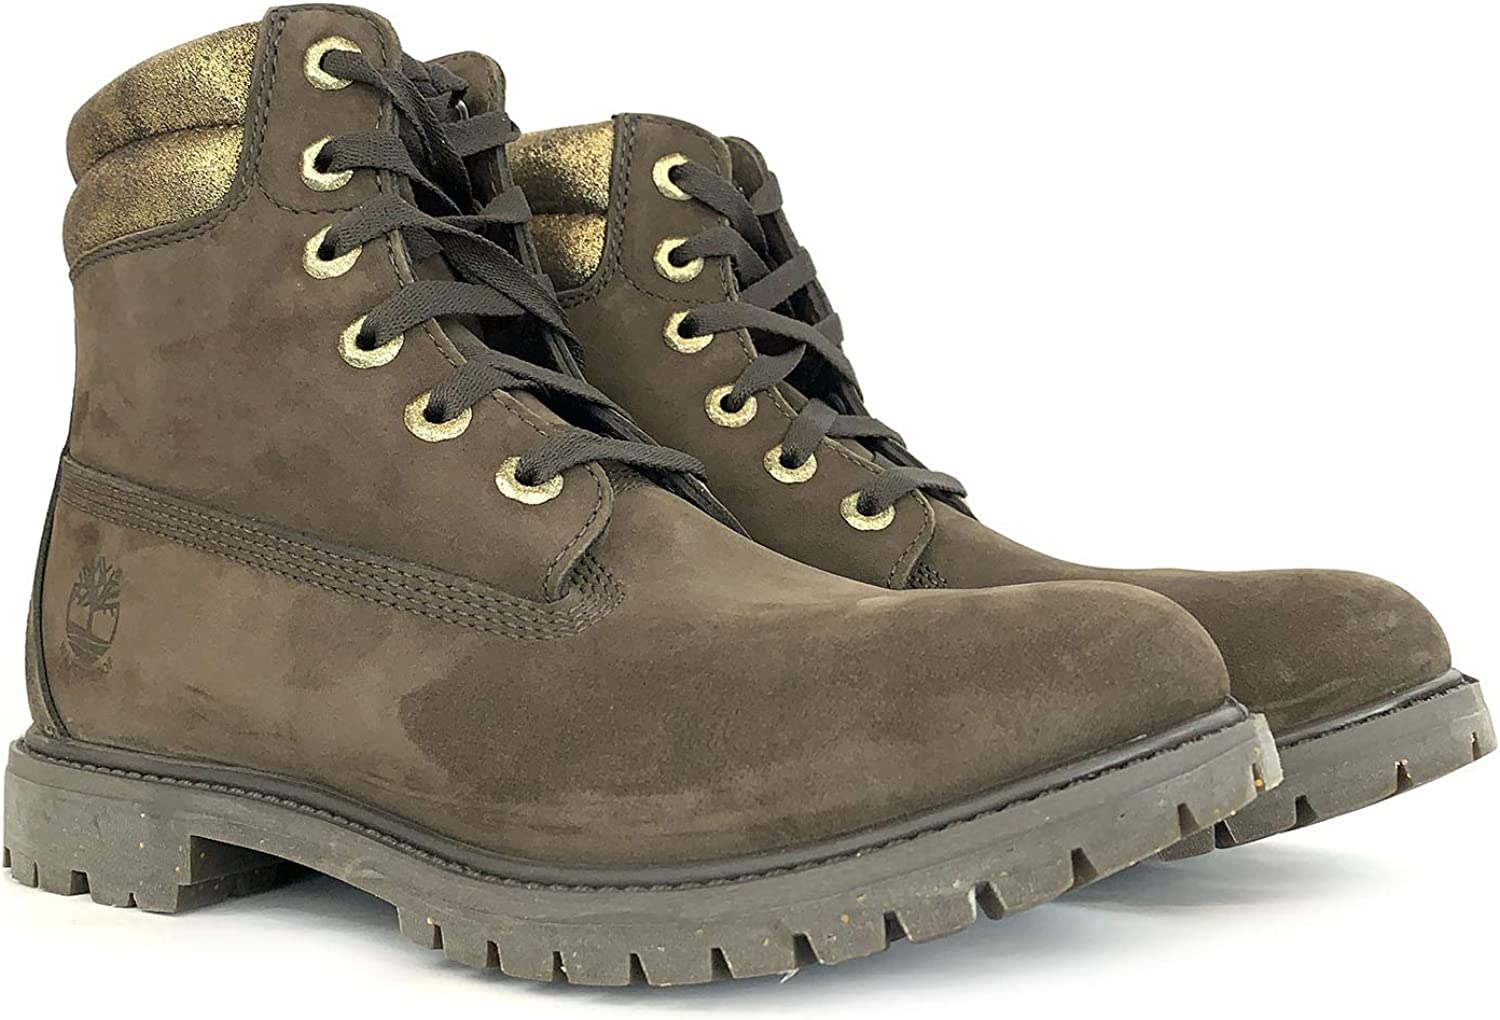 Timberland Women's 6 Inch Double Collar